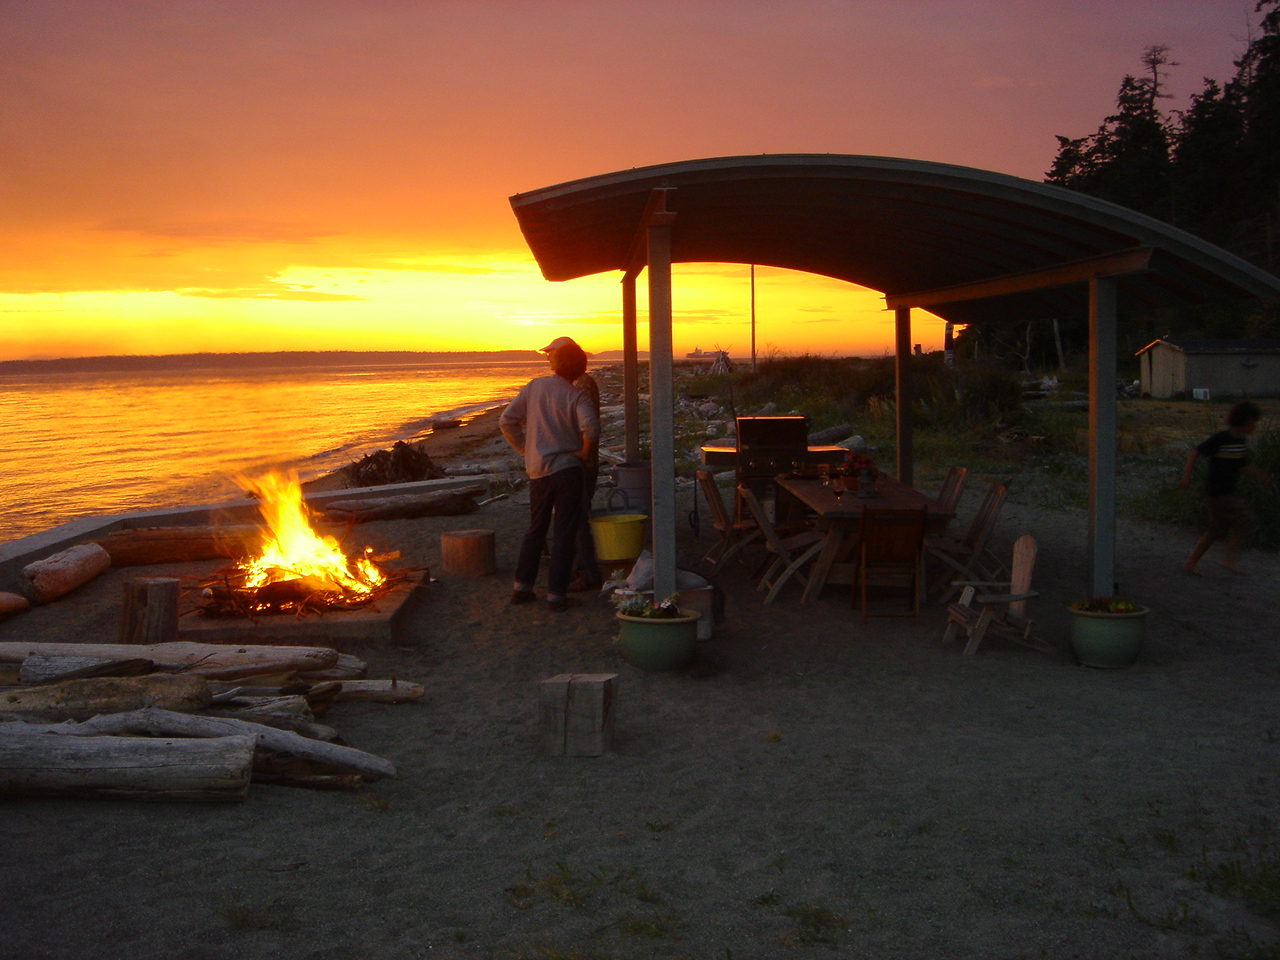 Watch the sun set at our private beach shelter